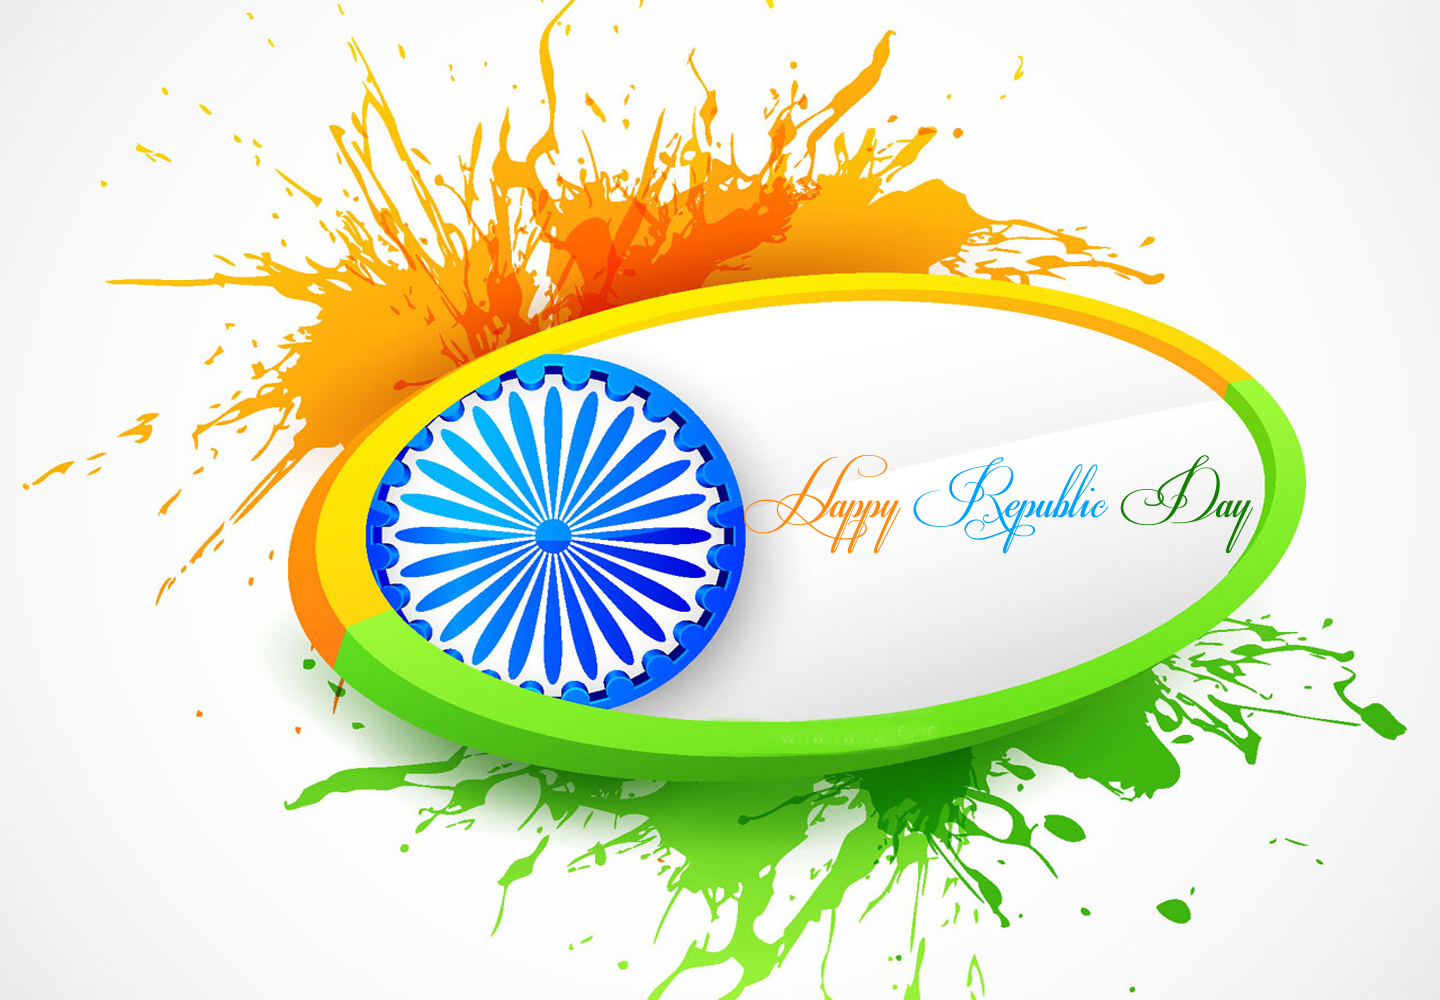 download republic day hd wallpapers, images for mobile and pc - techicy